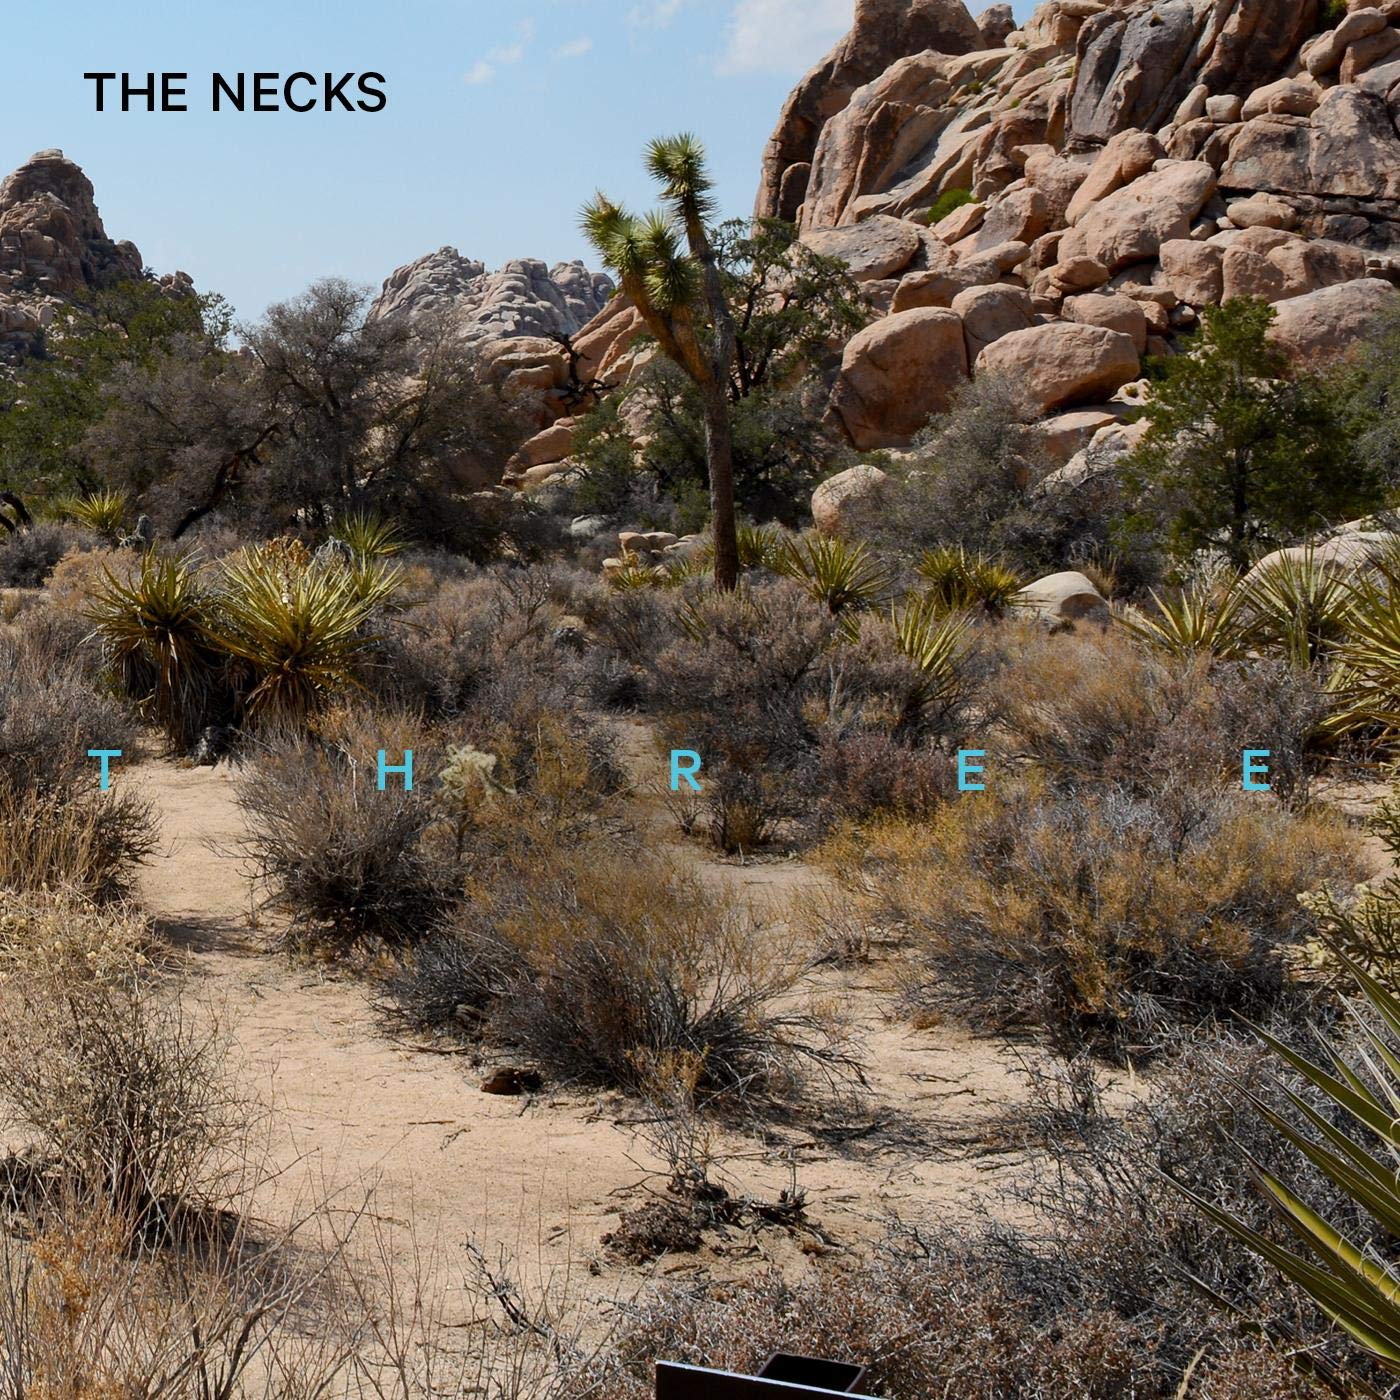 The Necks